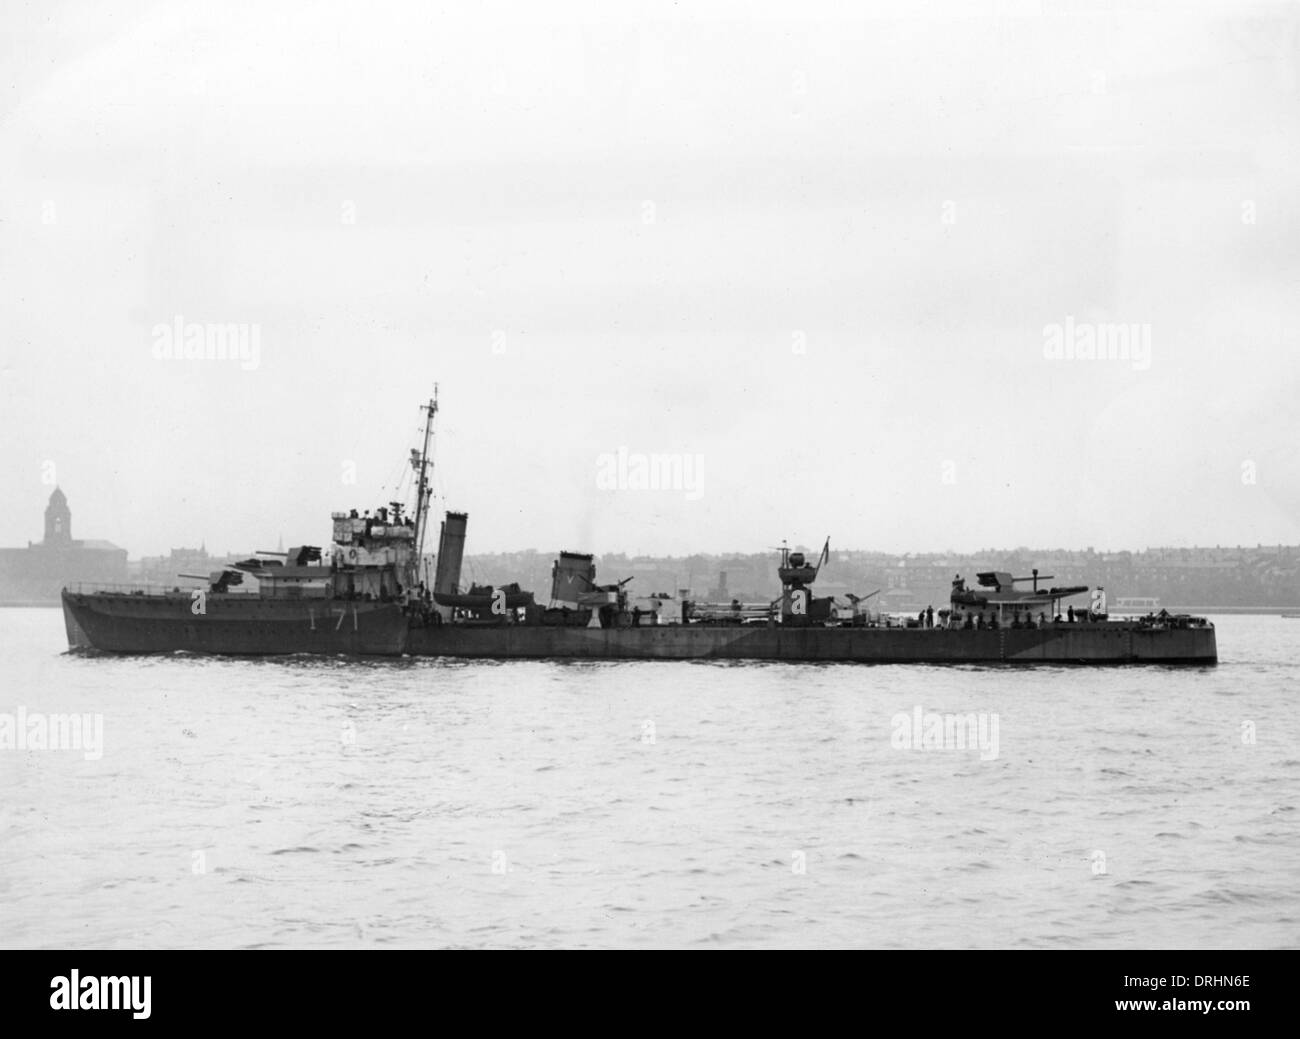 HMS Volunteer, British destroyer, WW2 - Stock Image